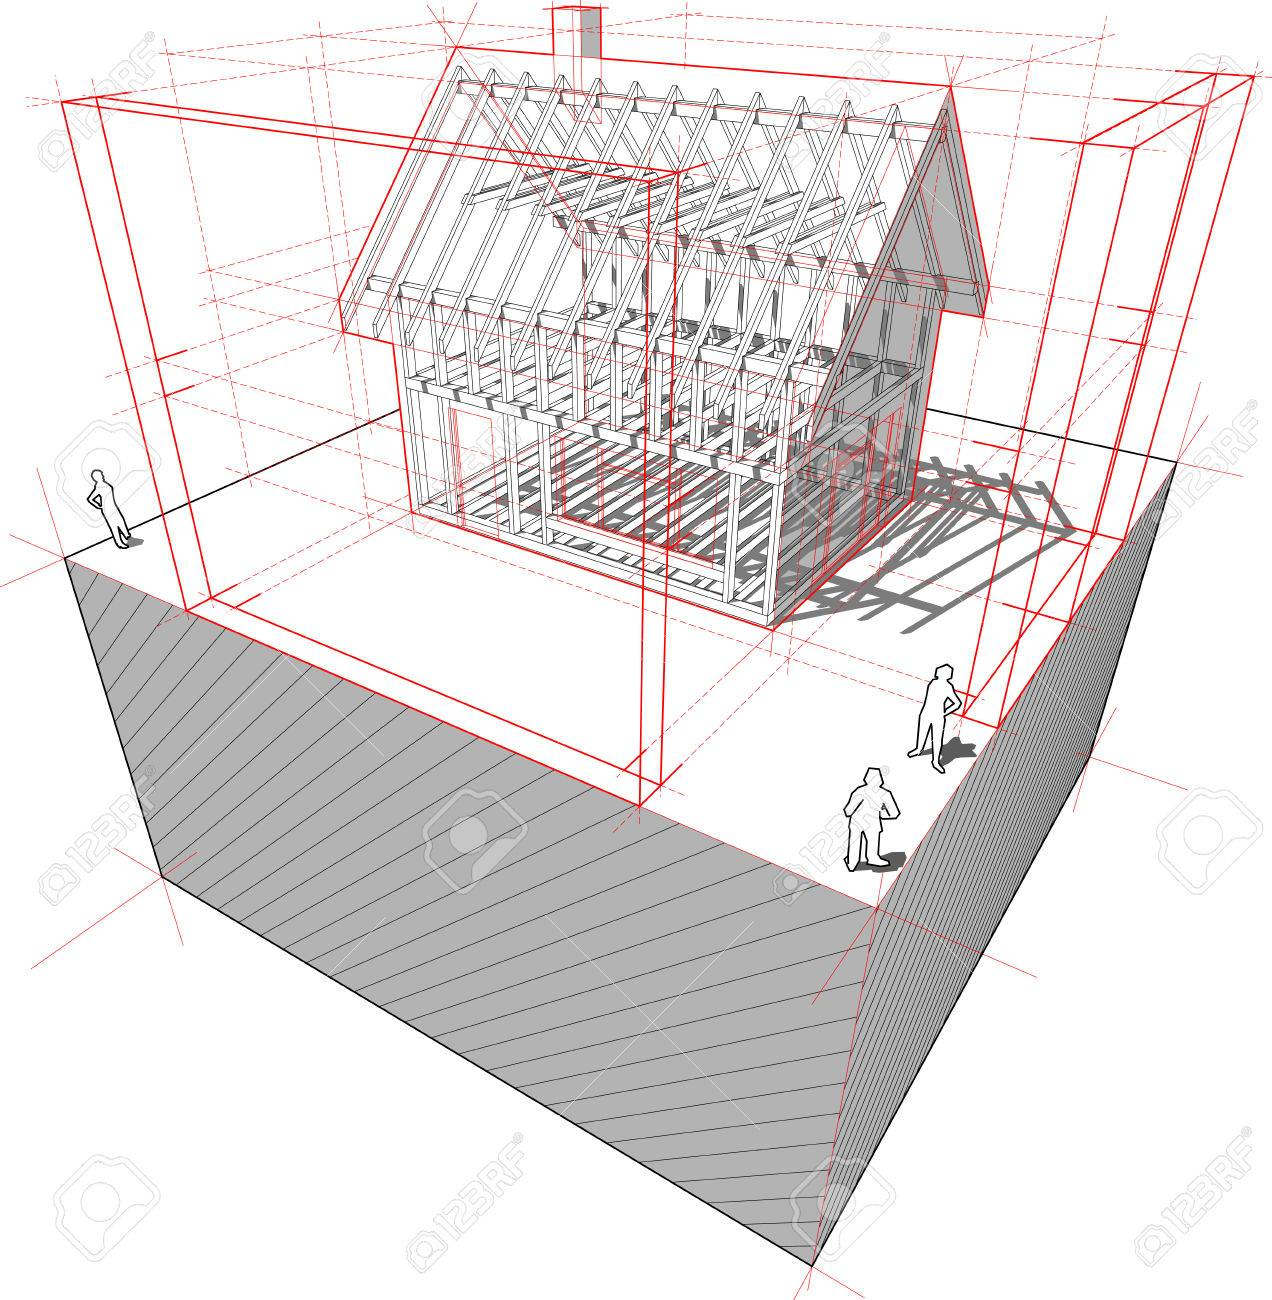 Diagram Of A Framework Construction Of A Detached House With ...